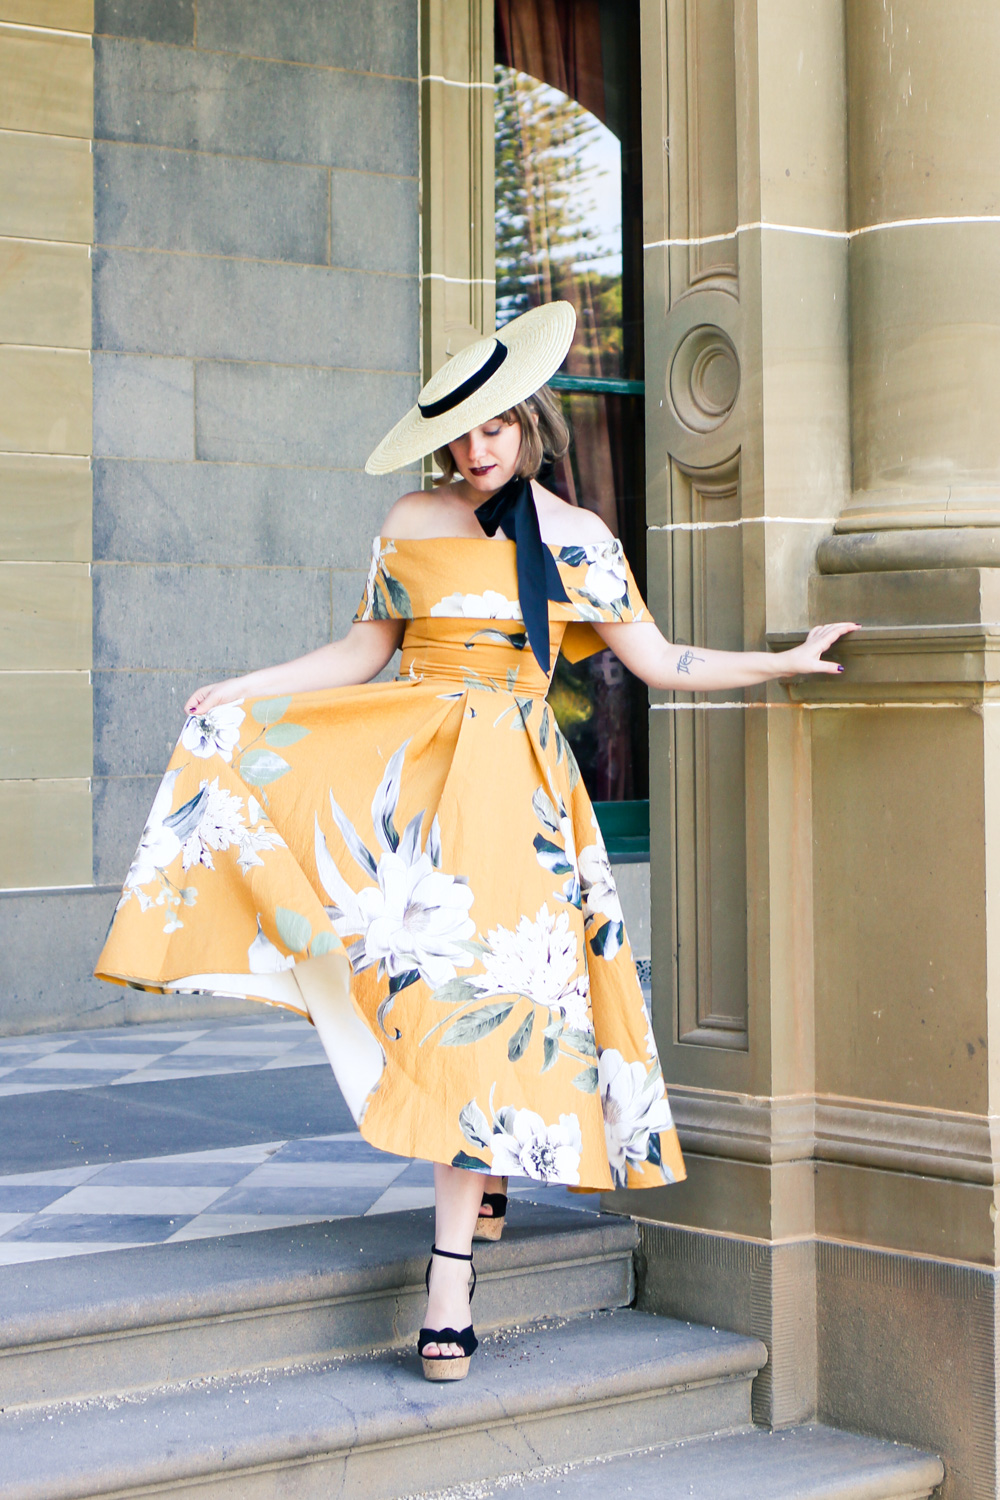 @findingfemme at So Frenchy So Chic wearing yellow floral ASOS dress and straw boater